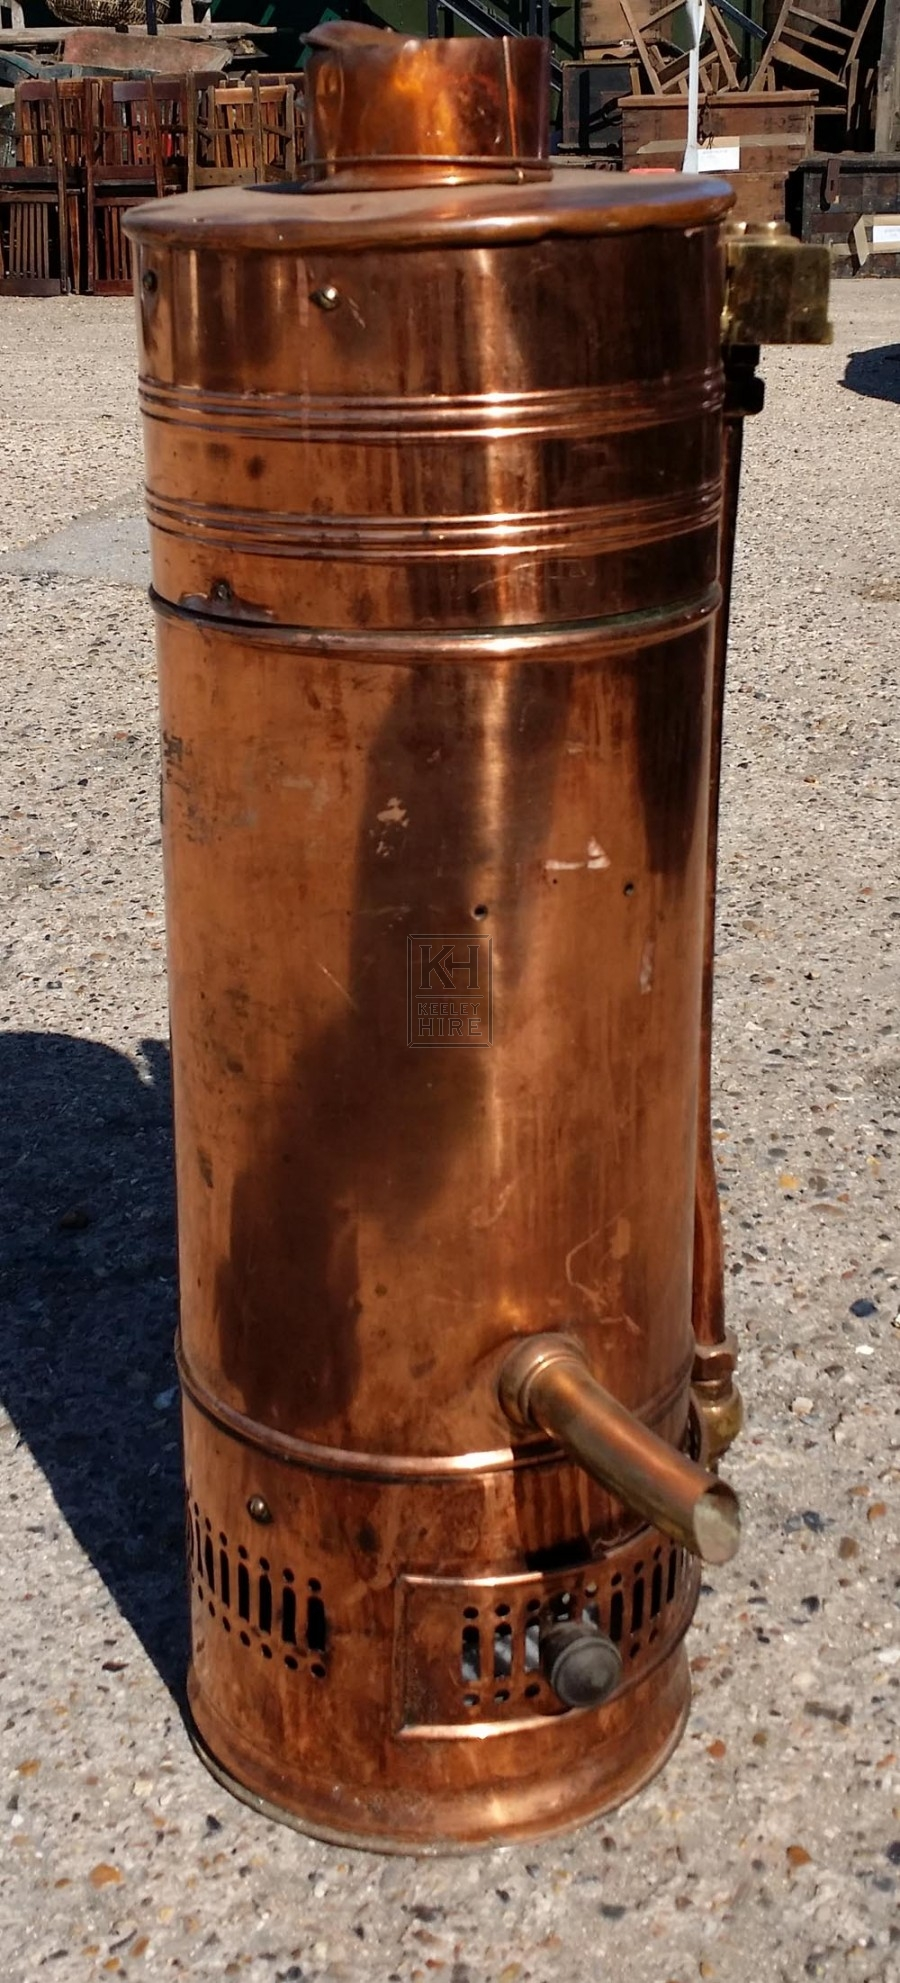 copperware prop hire large copper water boiler keeley hire